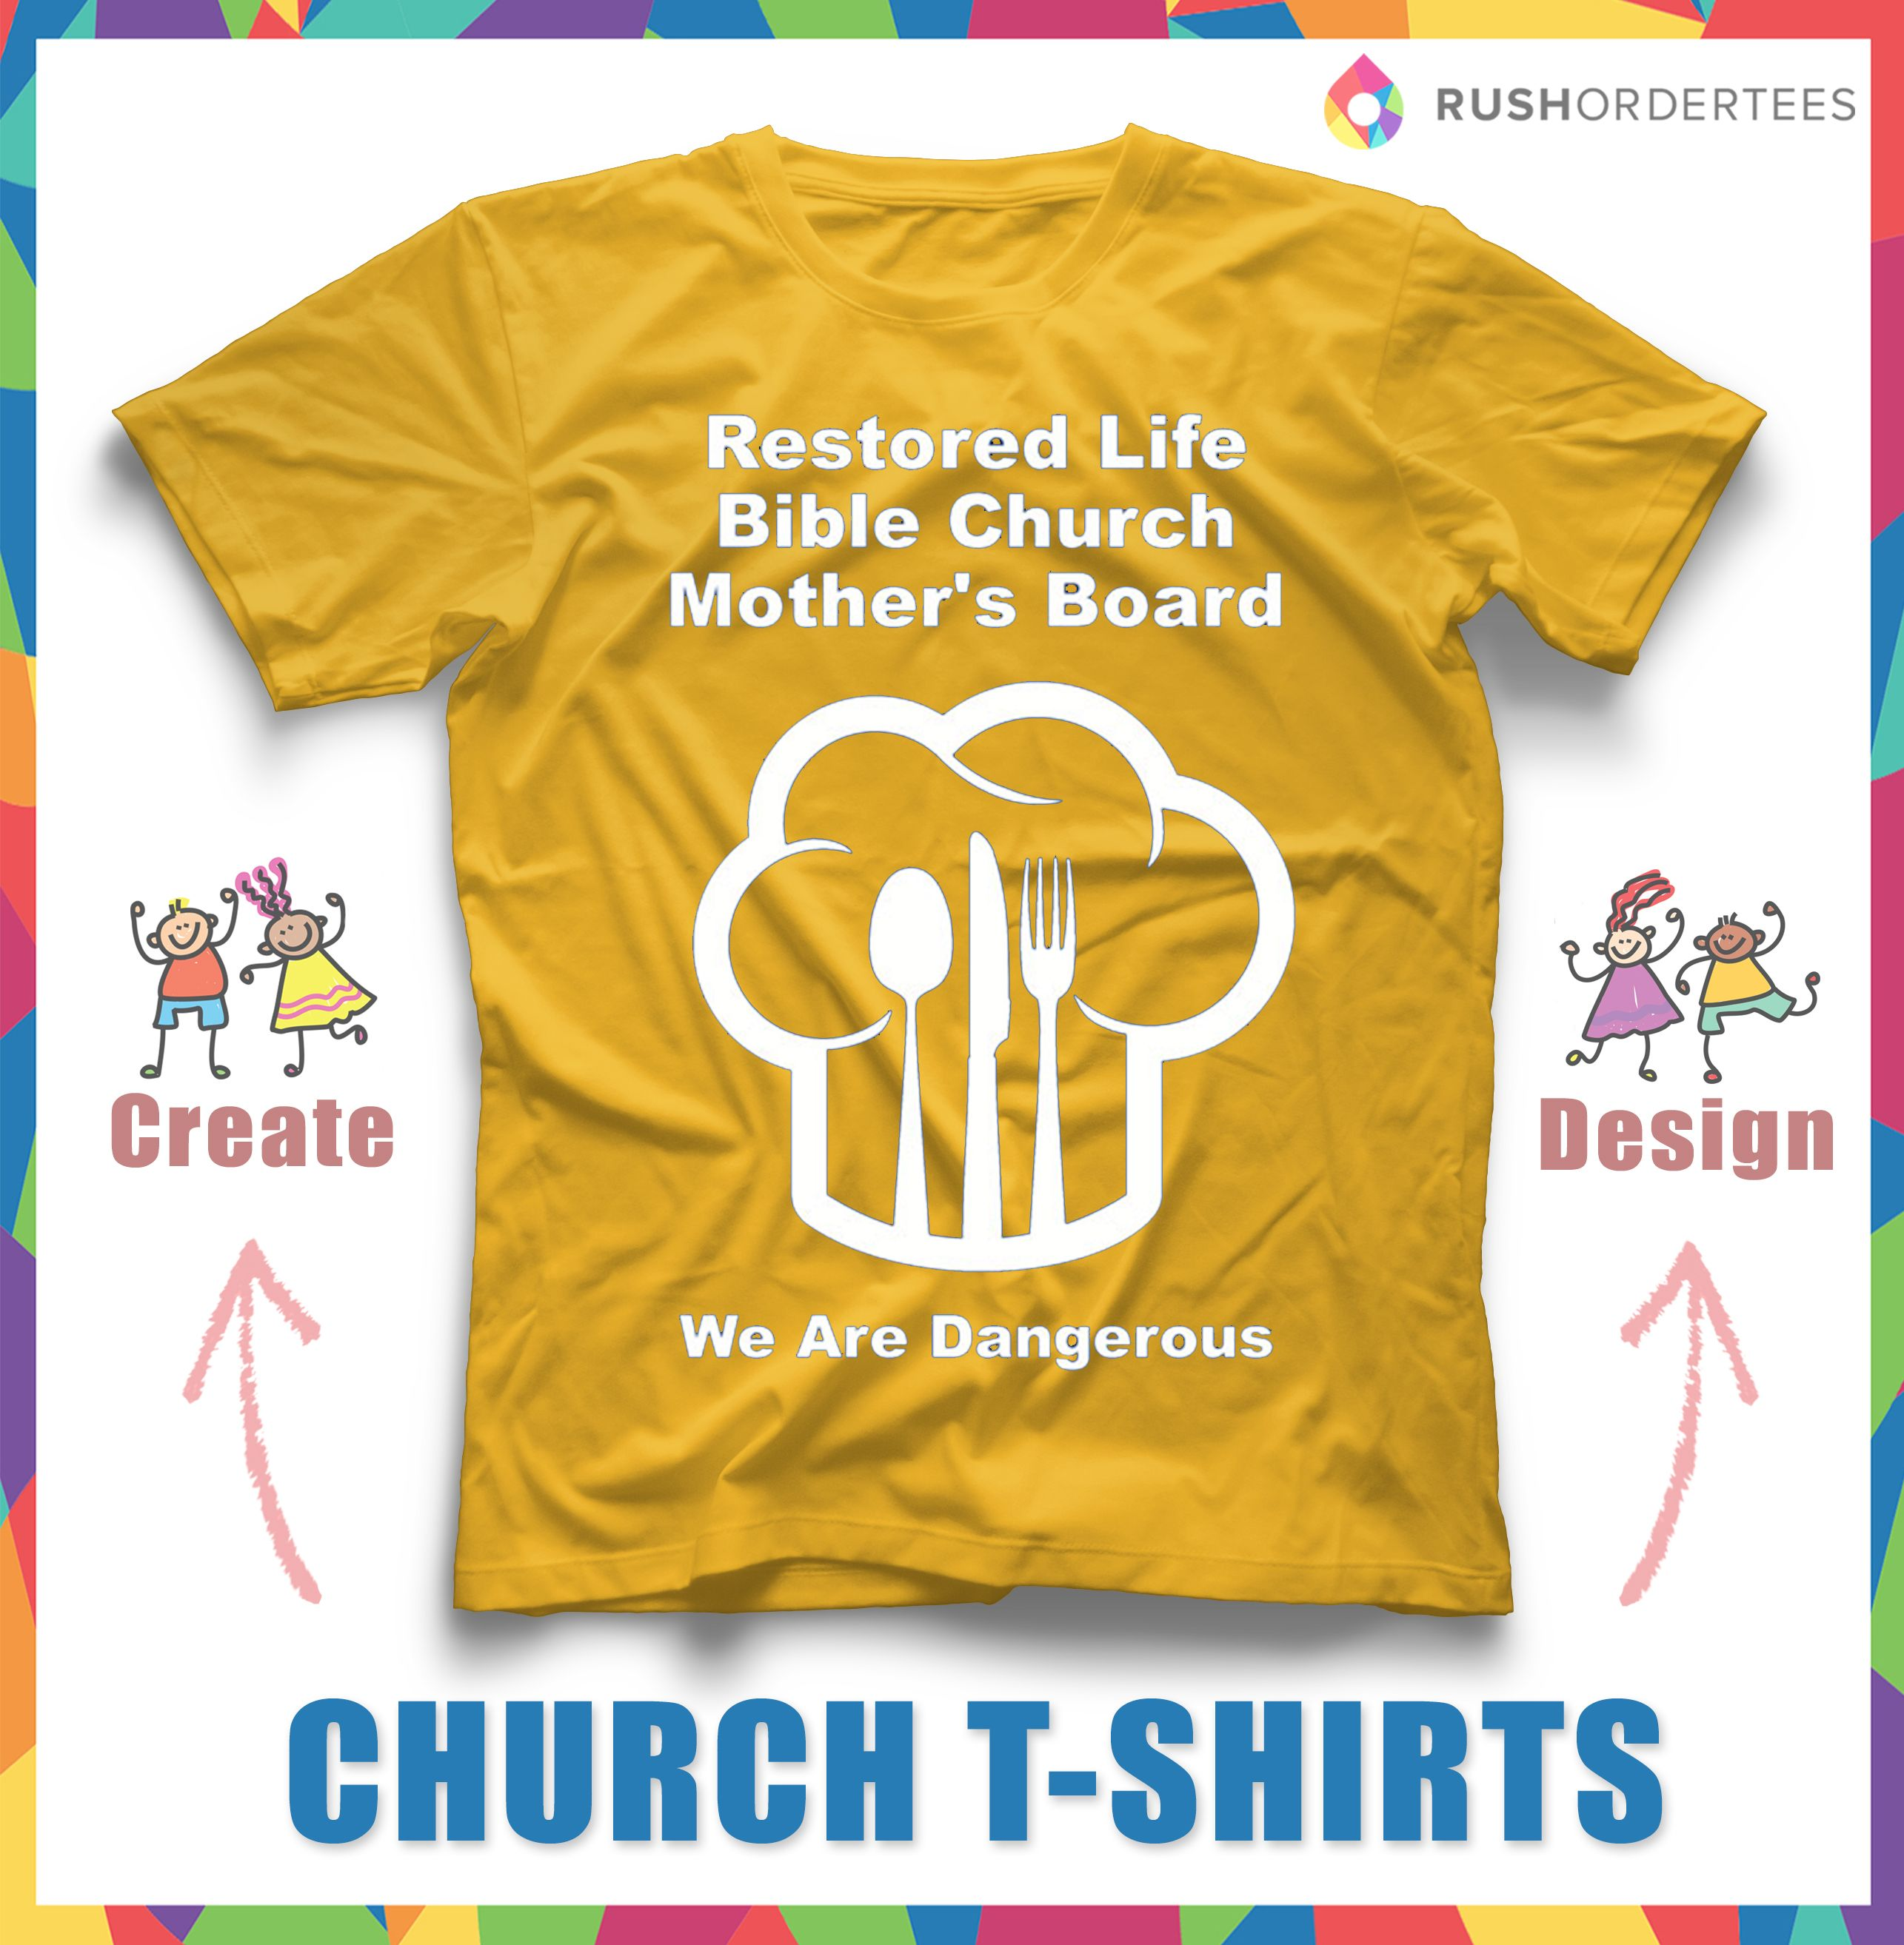 Design your own t-shirt for fun